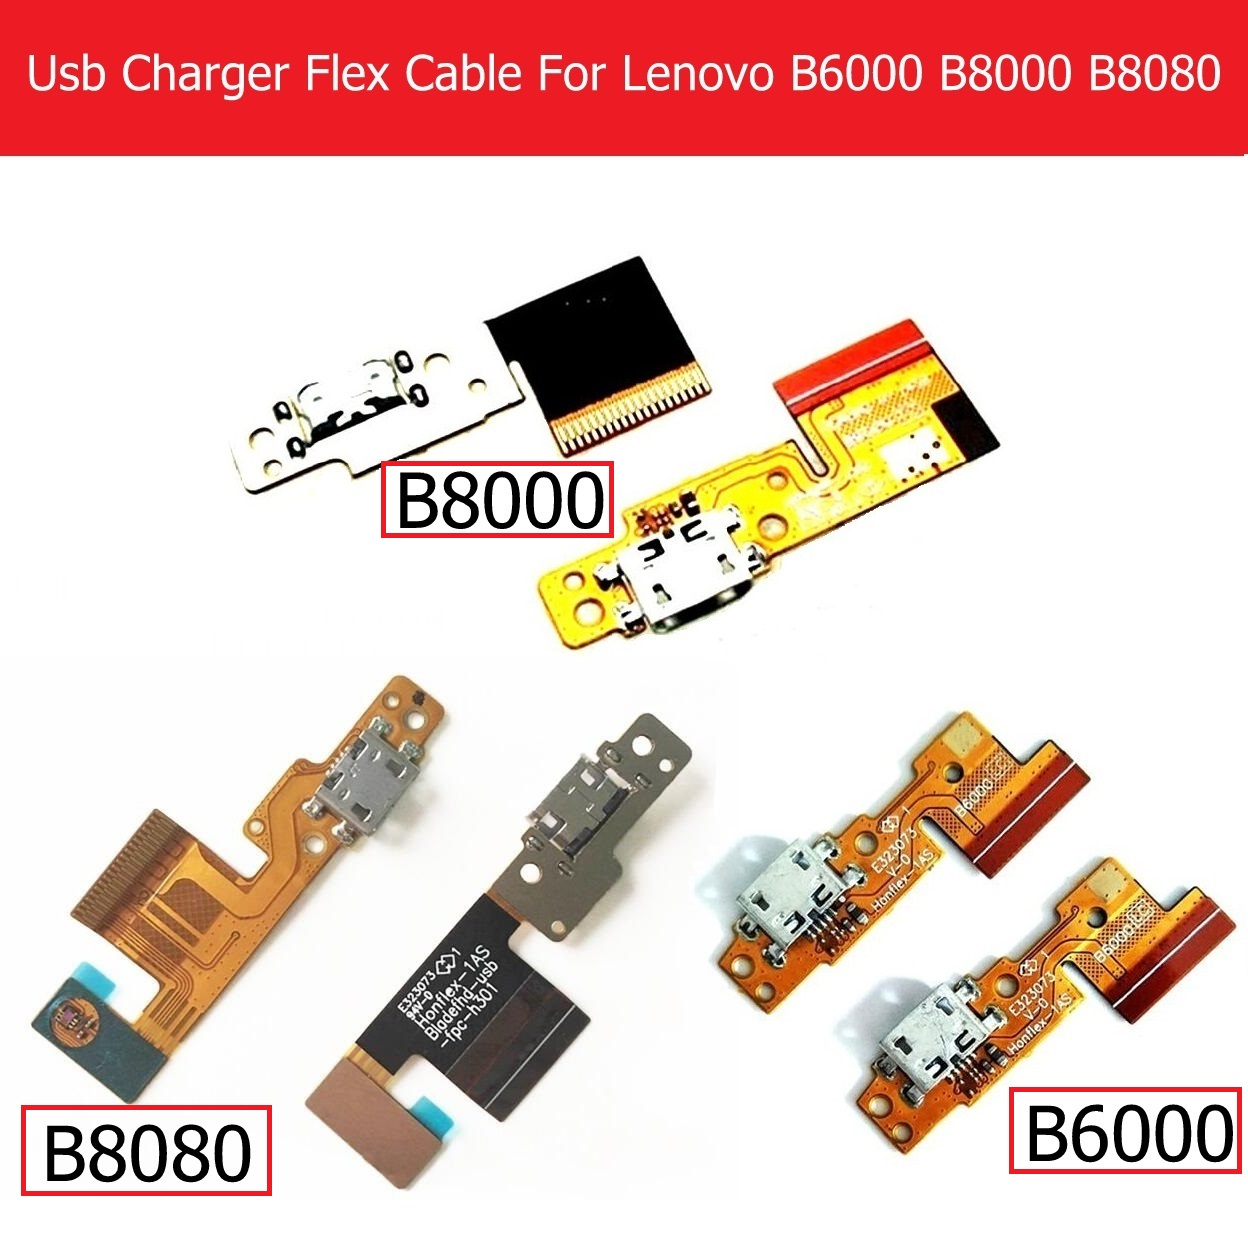 Genuine USB Charger Connector Flex Cable For Lenovo Pad B8000 B8080 10.1 USB Charging For Lenovo B6000 pad Charger Flex Cable 100% new usb charging charger port dock connector flex cable replacement for lenovo a859